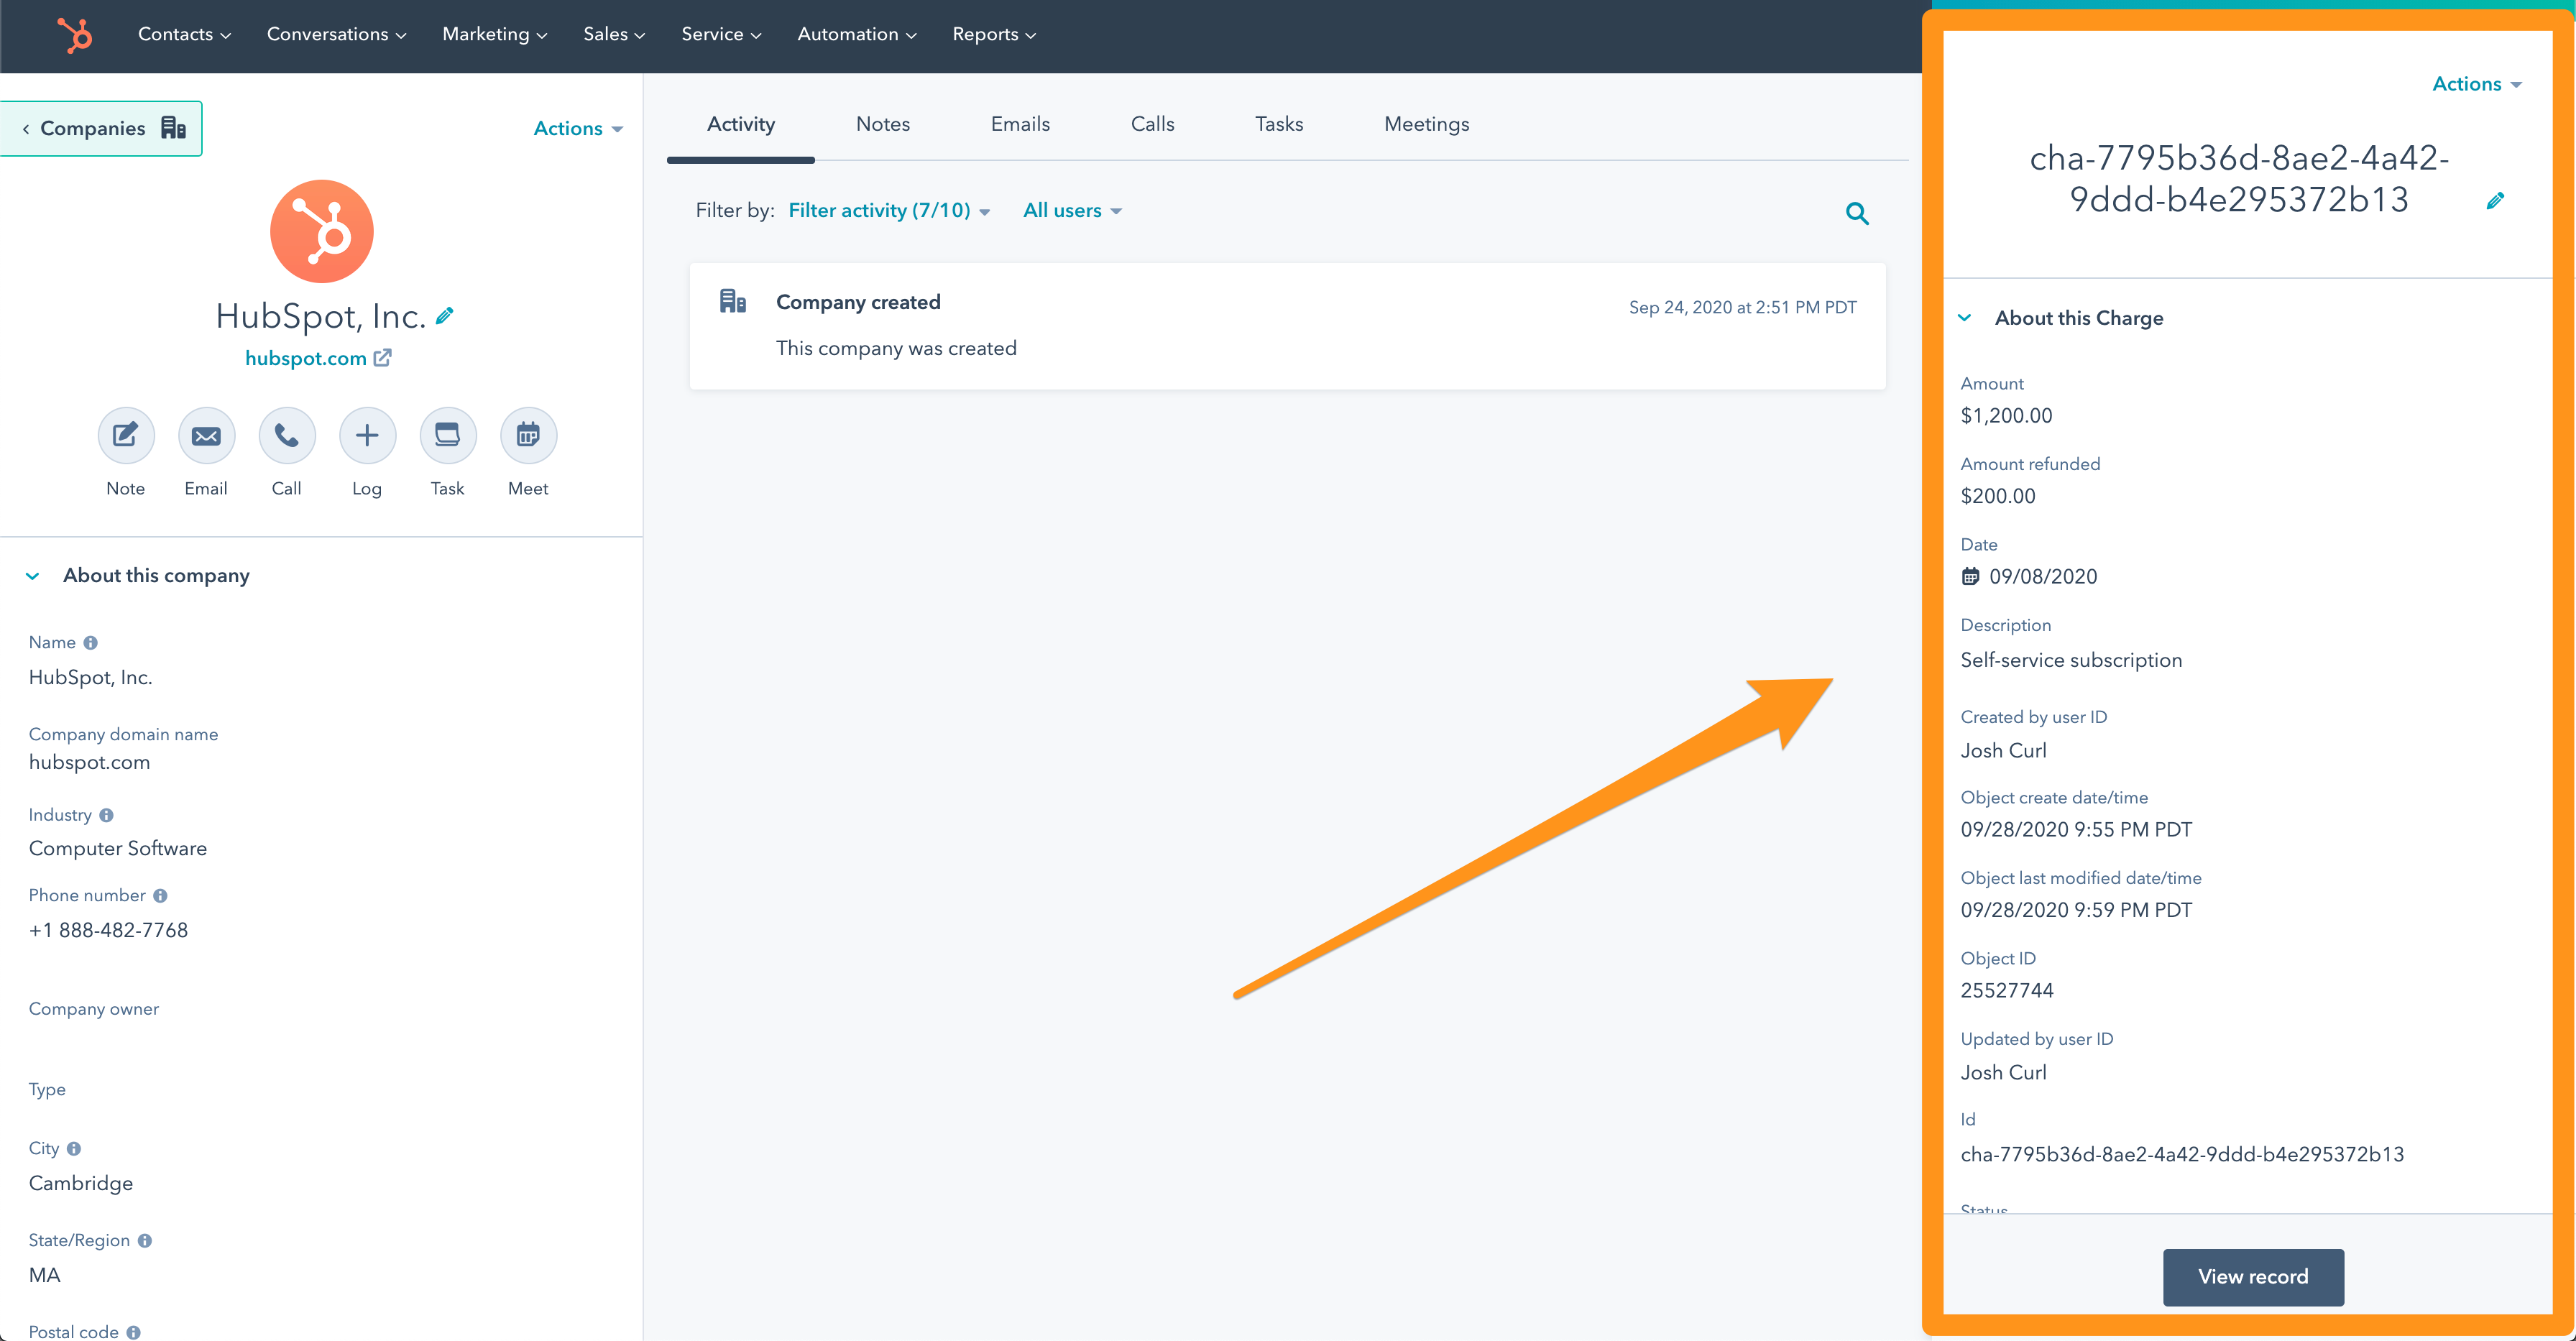 how-to-sync-custom-objects-and-fields-from-your-data-warehouse-to-hubspot 3.png